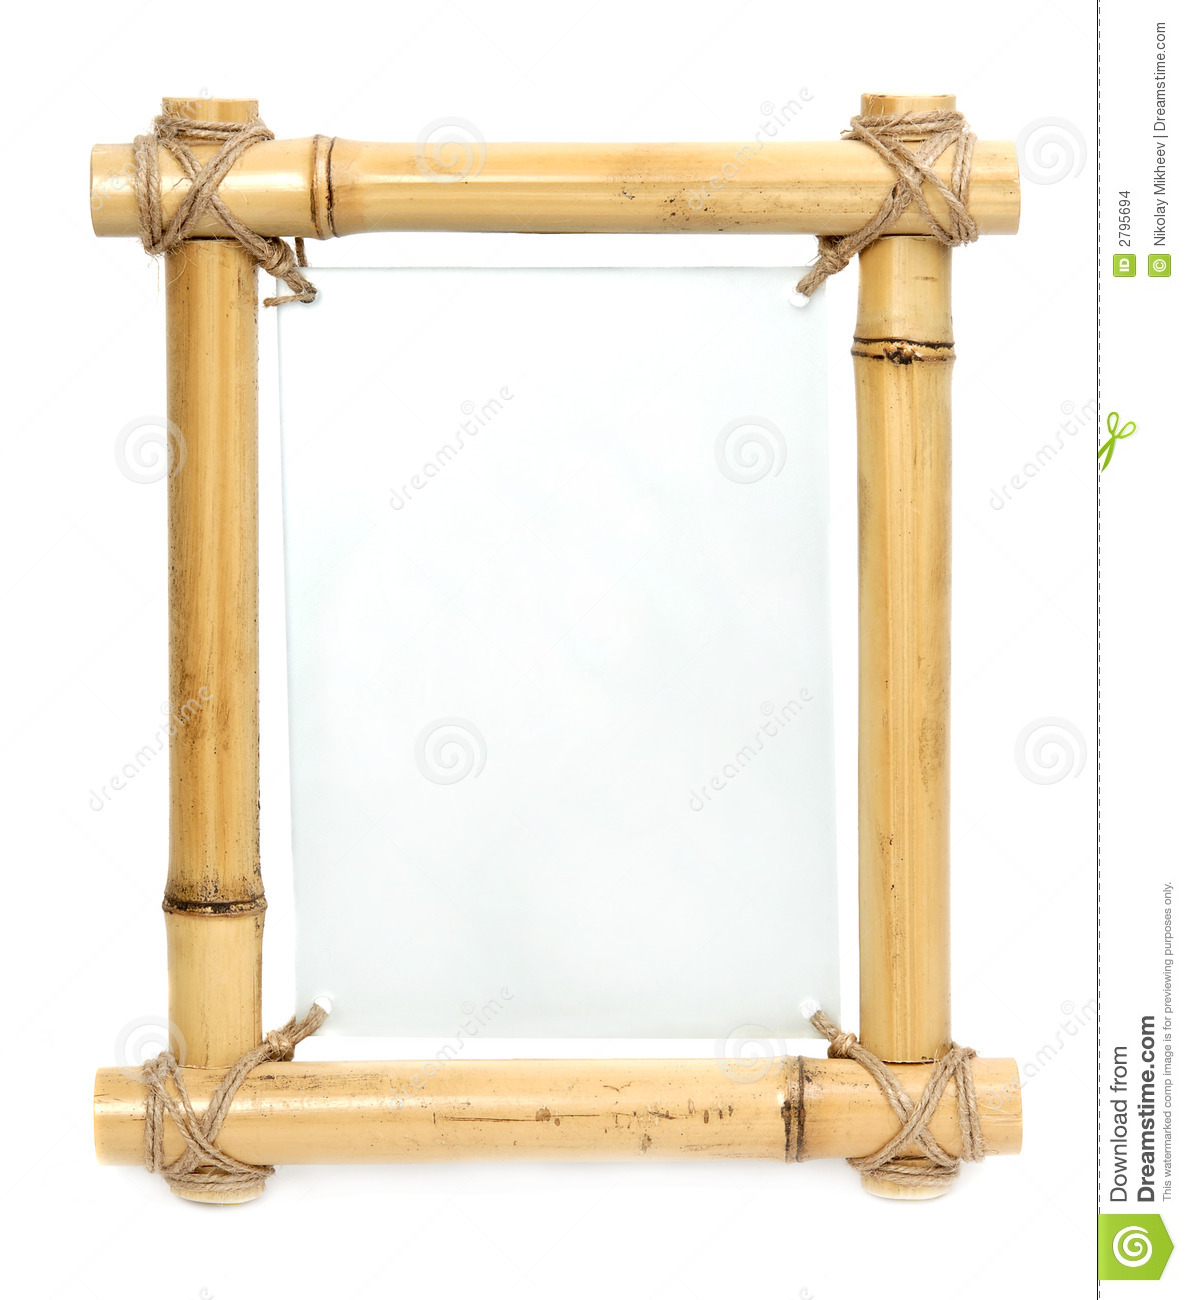 bamboo wood frame - photo #11